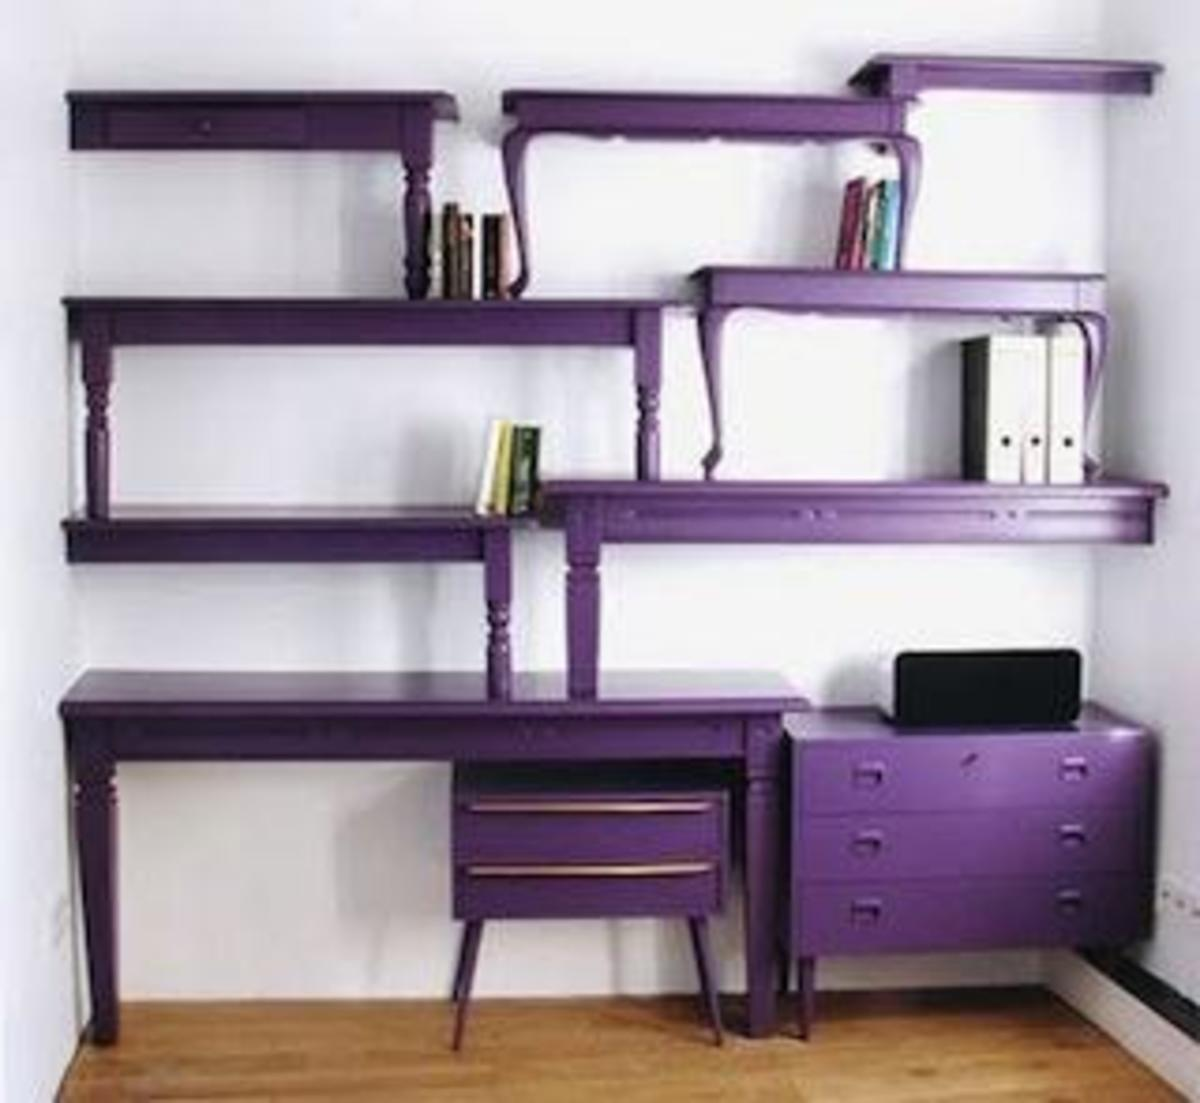 This is an excellent example of a totally unique piece of upcycled furniture. Notice how it's a bold statement, but very utilitarian at the same time!